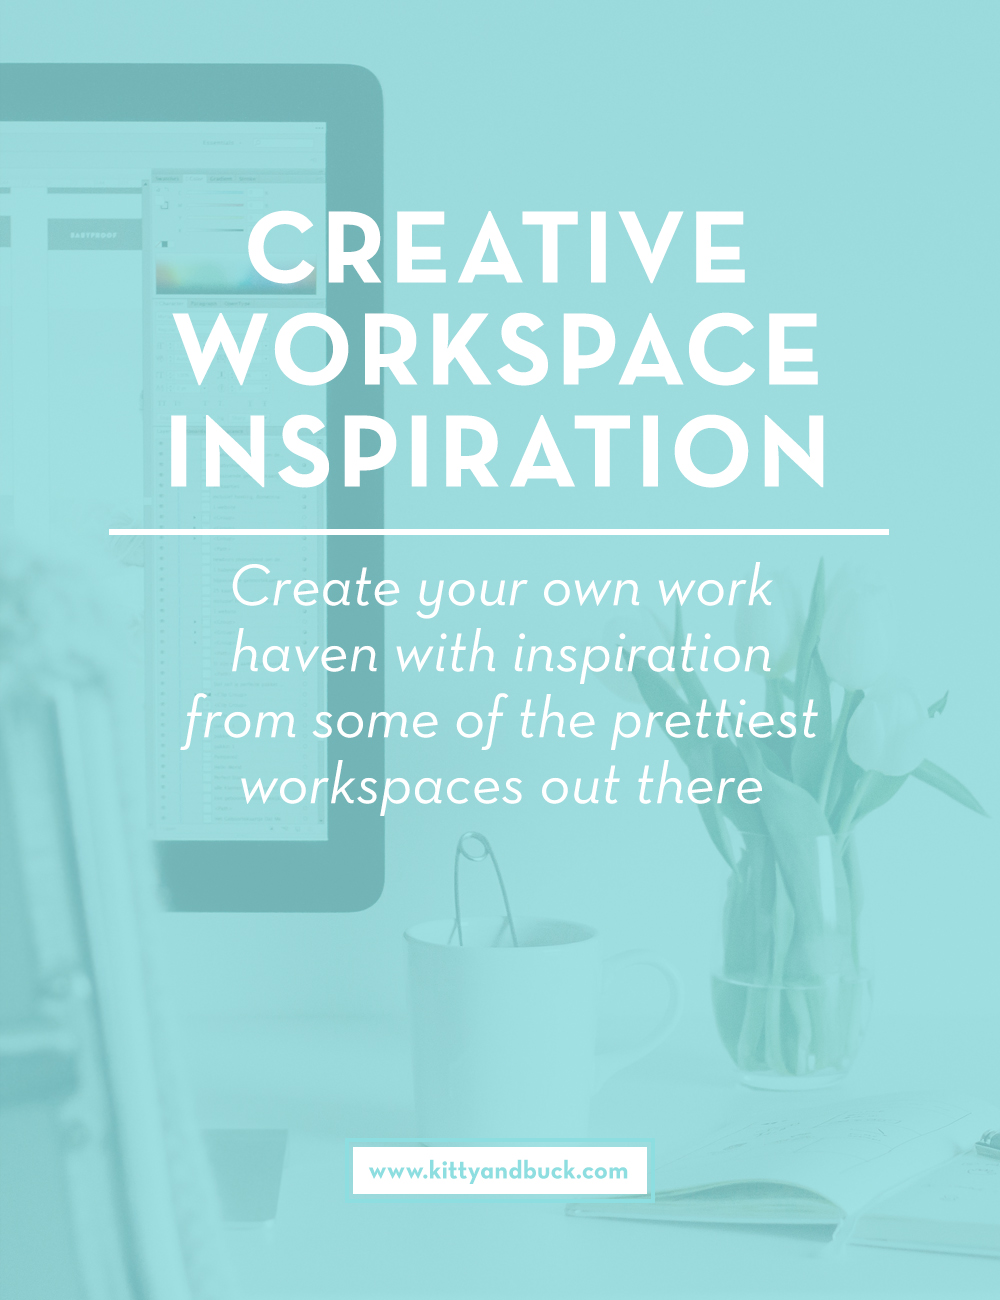 Work Your Way is a series that's all about inspiring each other and sharing knowledge to help us all work better and smarter. If you work from home, check out this post, it's full of ways to optimize your workspace. Find out the five essential factors to a creative, inspiring and productive workspace. | by Kitty & Buck #workspace #workfromhome #interiorinspiration #officespace #homeoffice #ladyboss